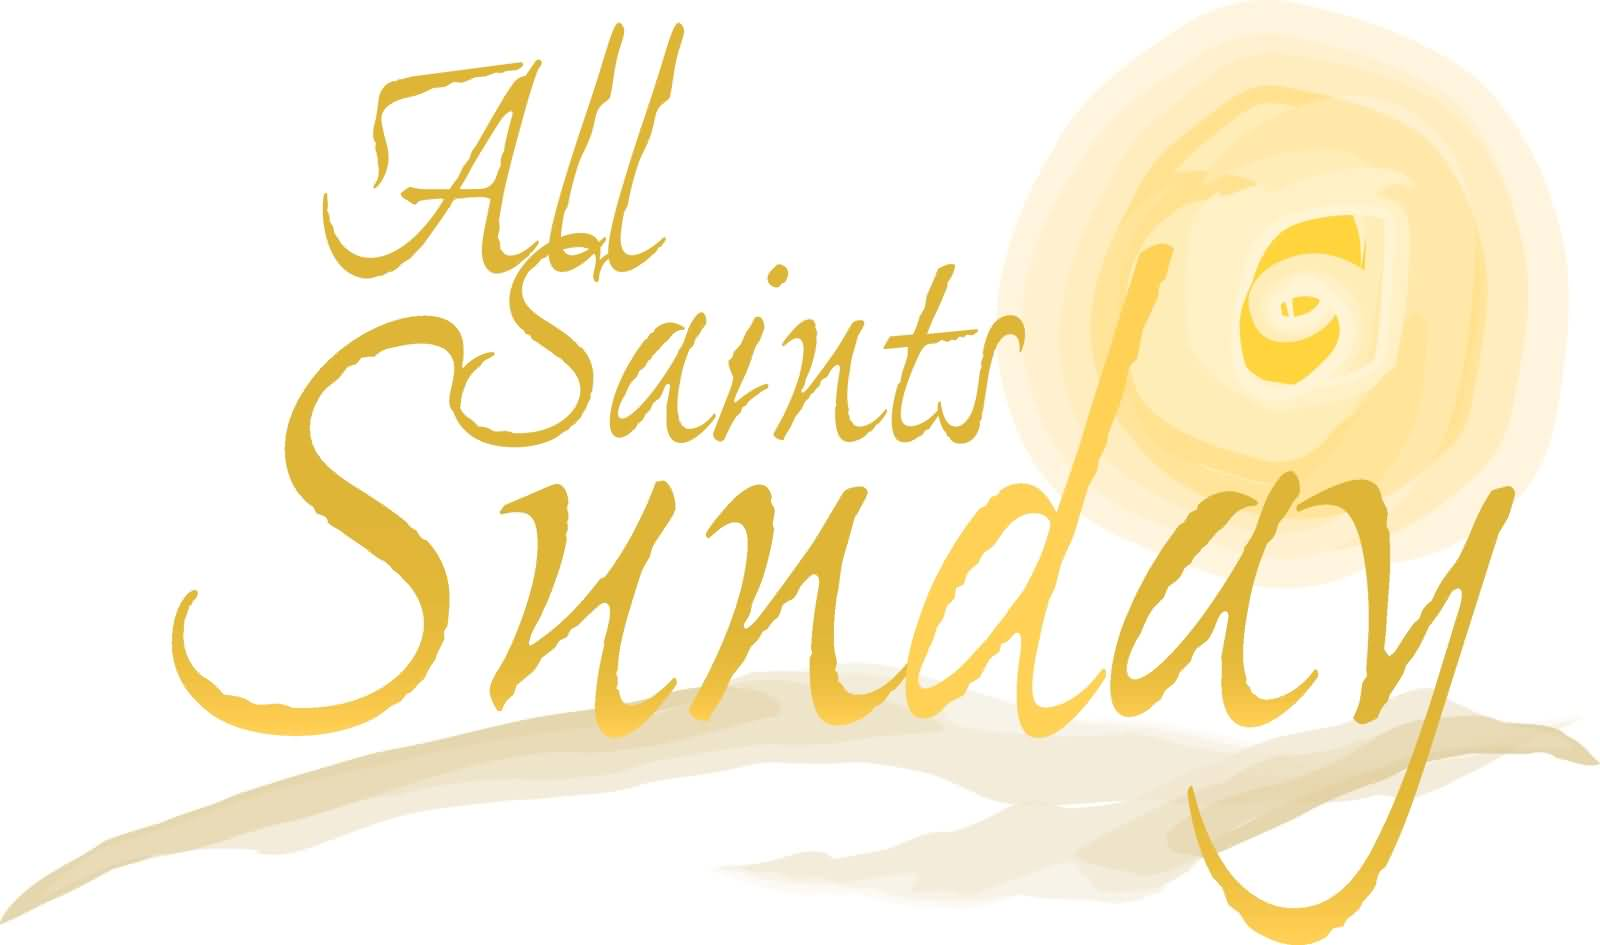 All Saints Day Sunday Clipart Wishes-All Saints Day Sunday Clipart Wishes-7